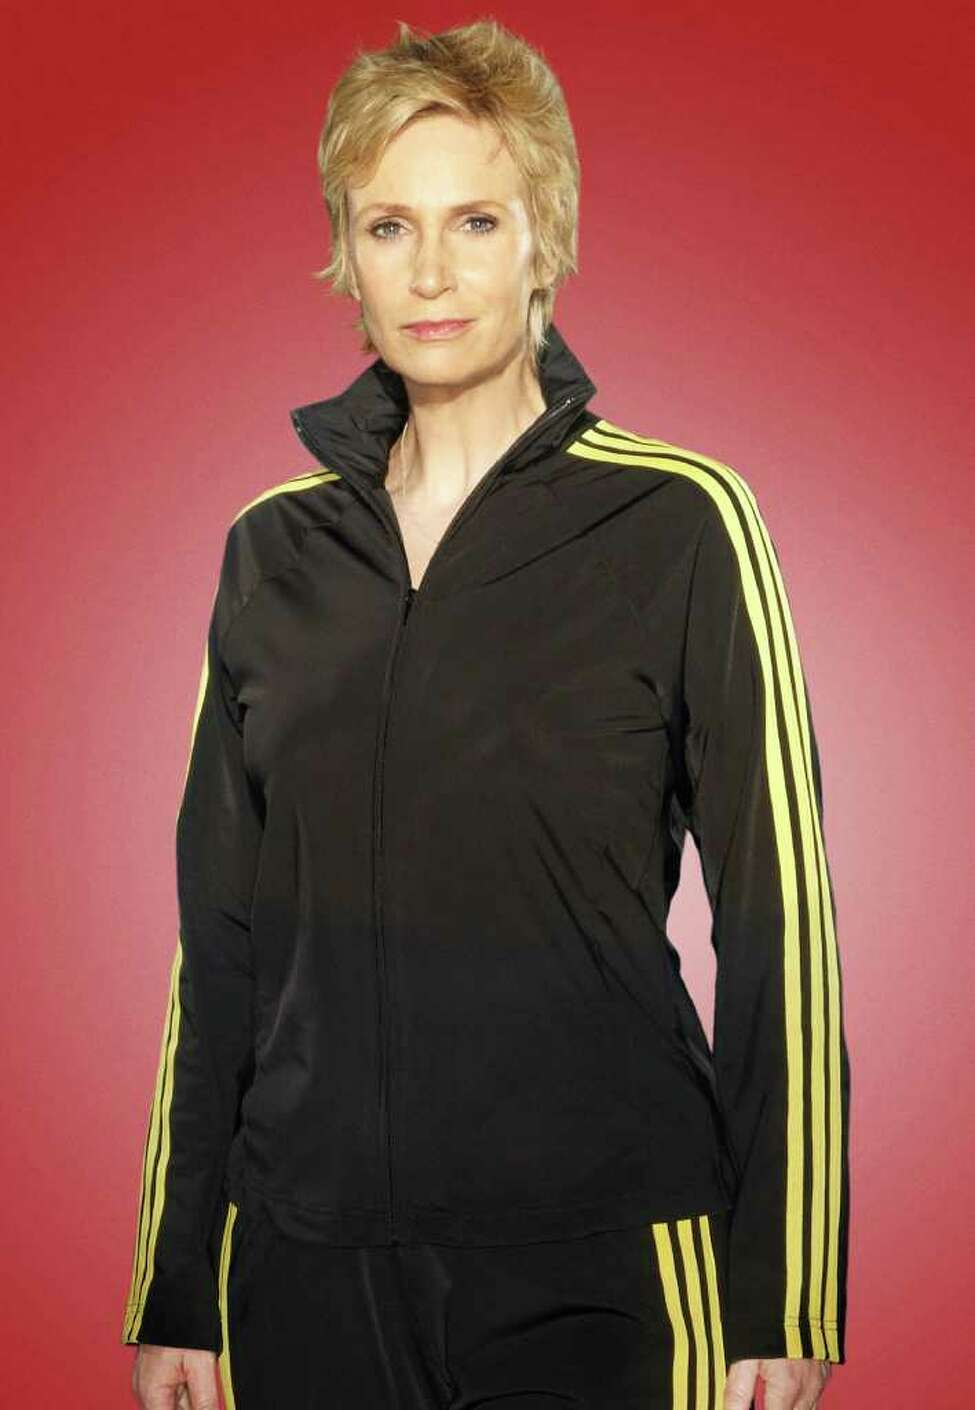 Jane Lynch plays Sue Sylvester on